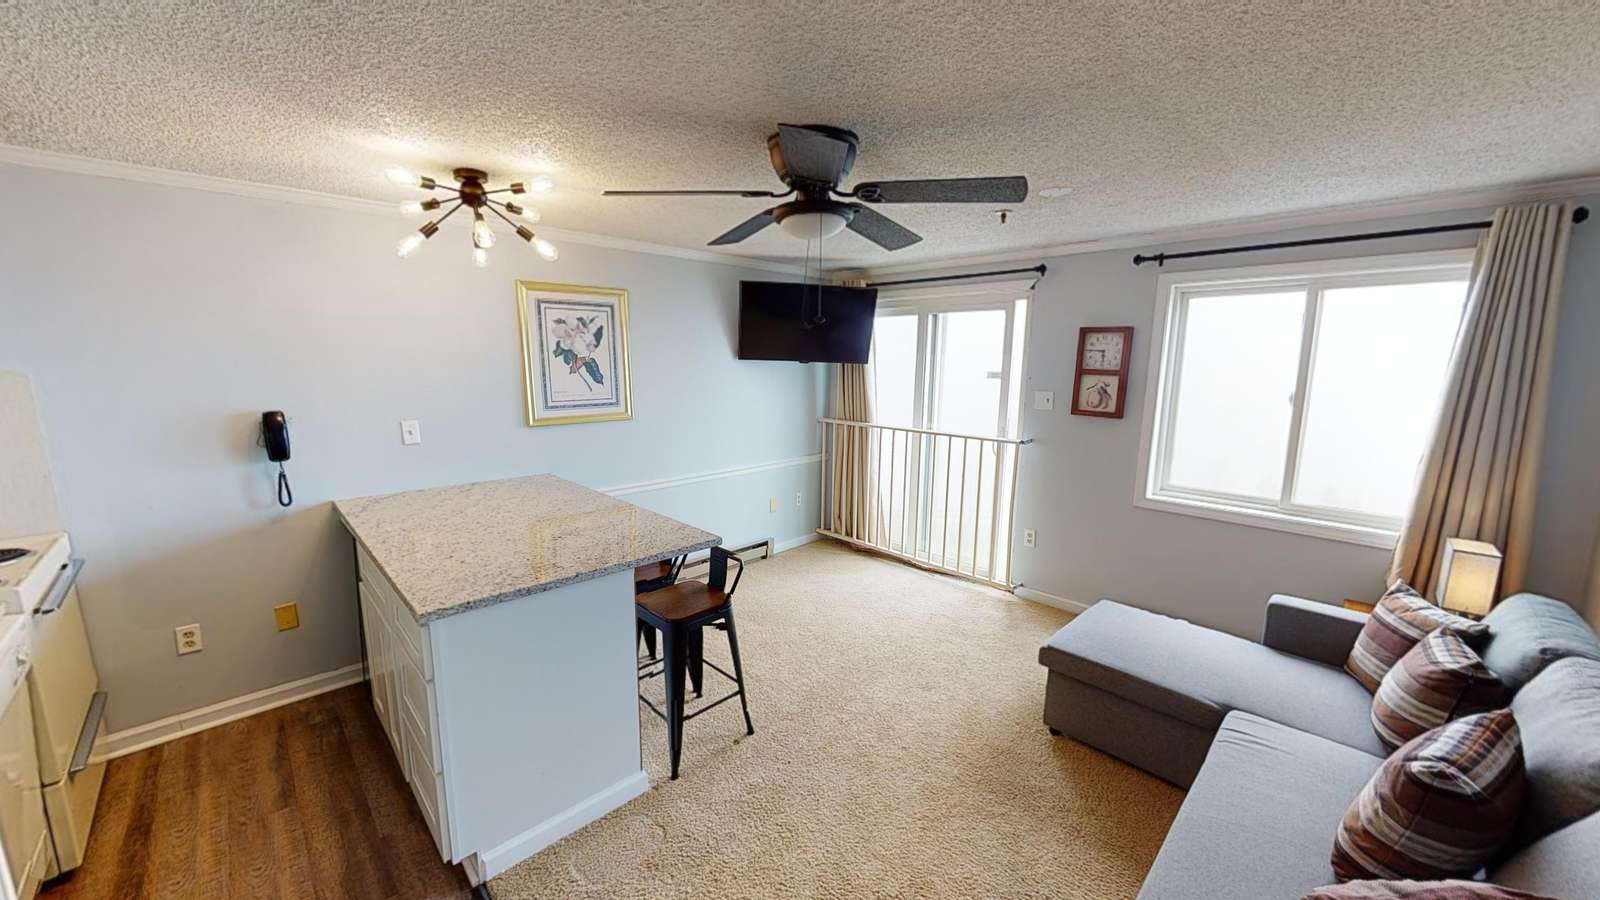 Unit 260 (1BR 1BA), ski in/out deluxe condo, free WI-FI and parking - property